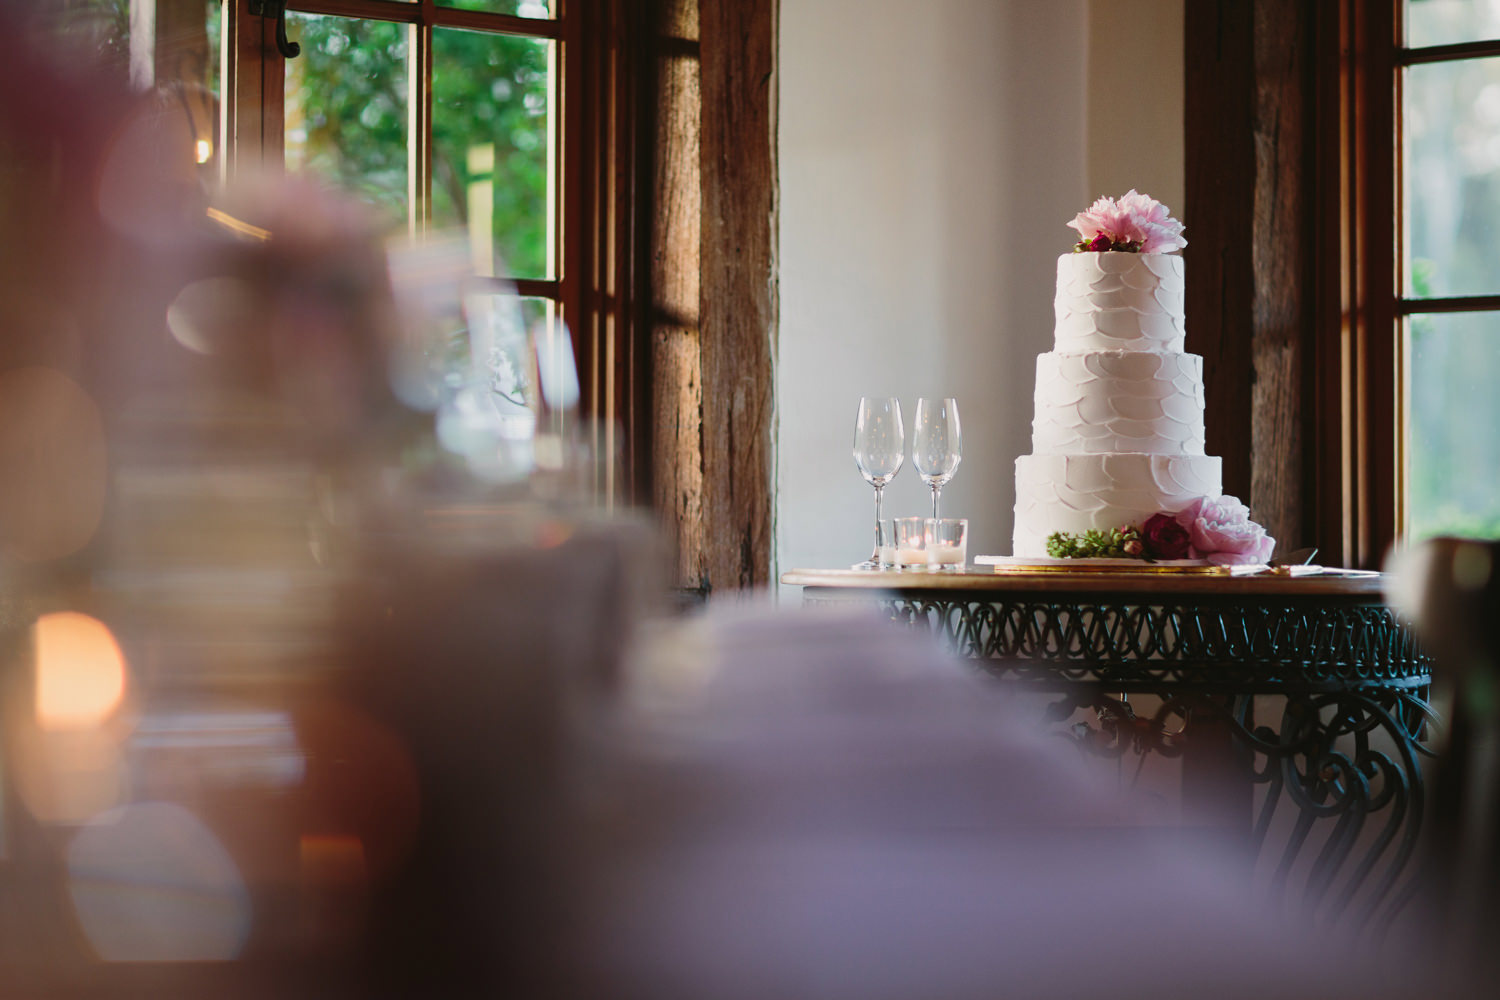 Rustic wedding cake at Circa 1876